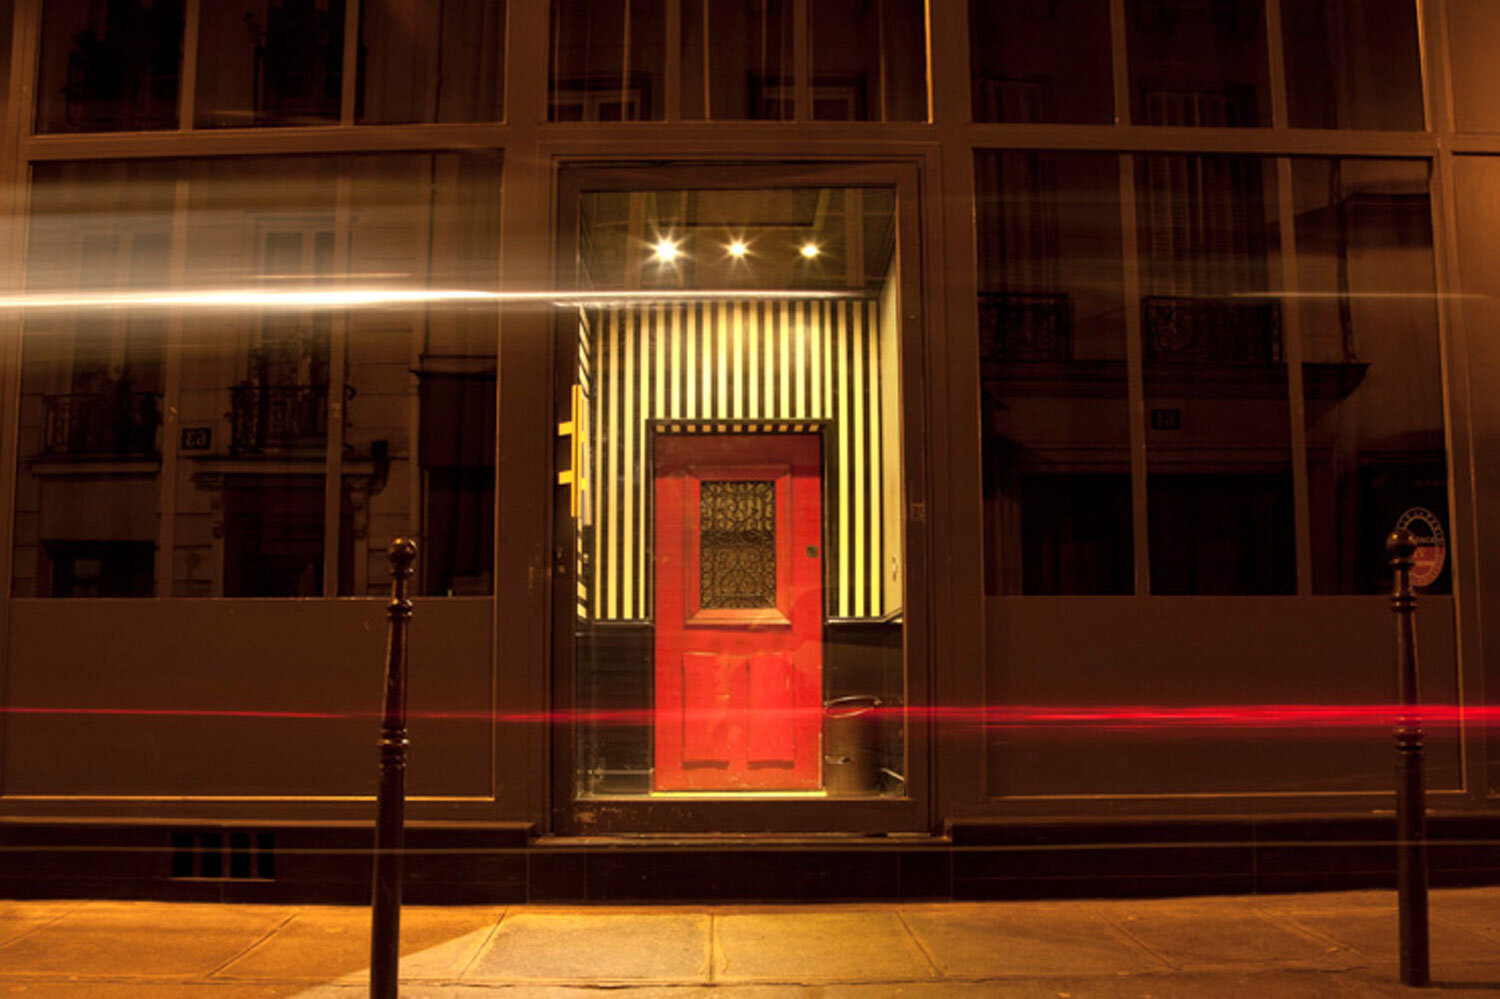 The_Ink_Collective_The_Daily_Grind_Pret-a-partir_The_Little_Red_Door_Paris_4.jpg